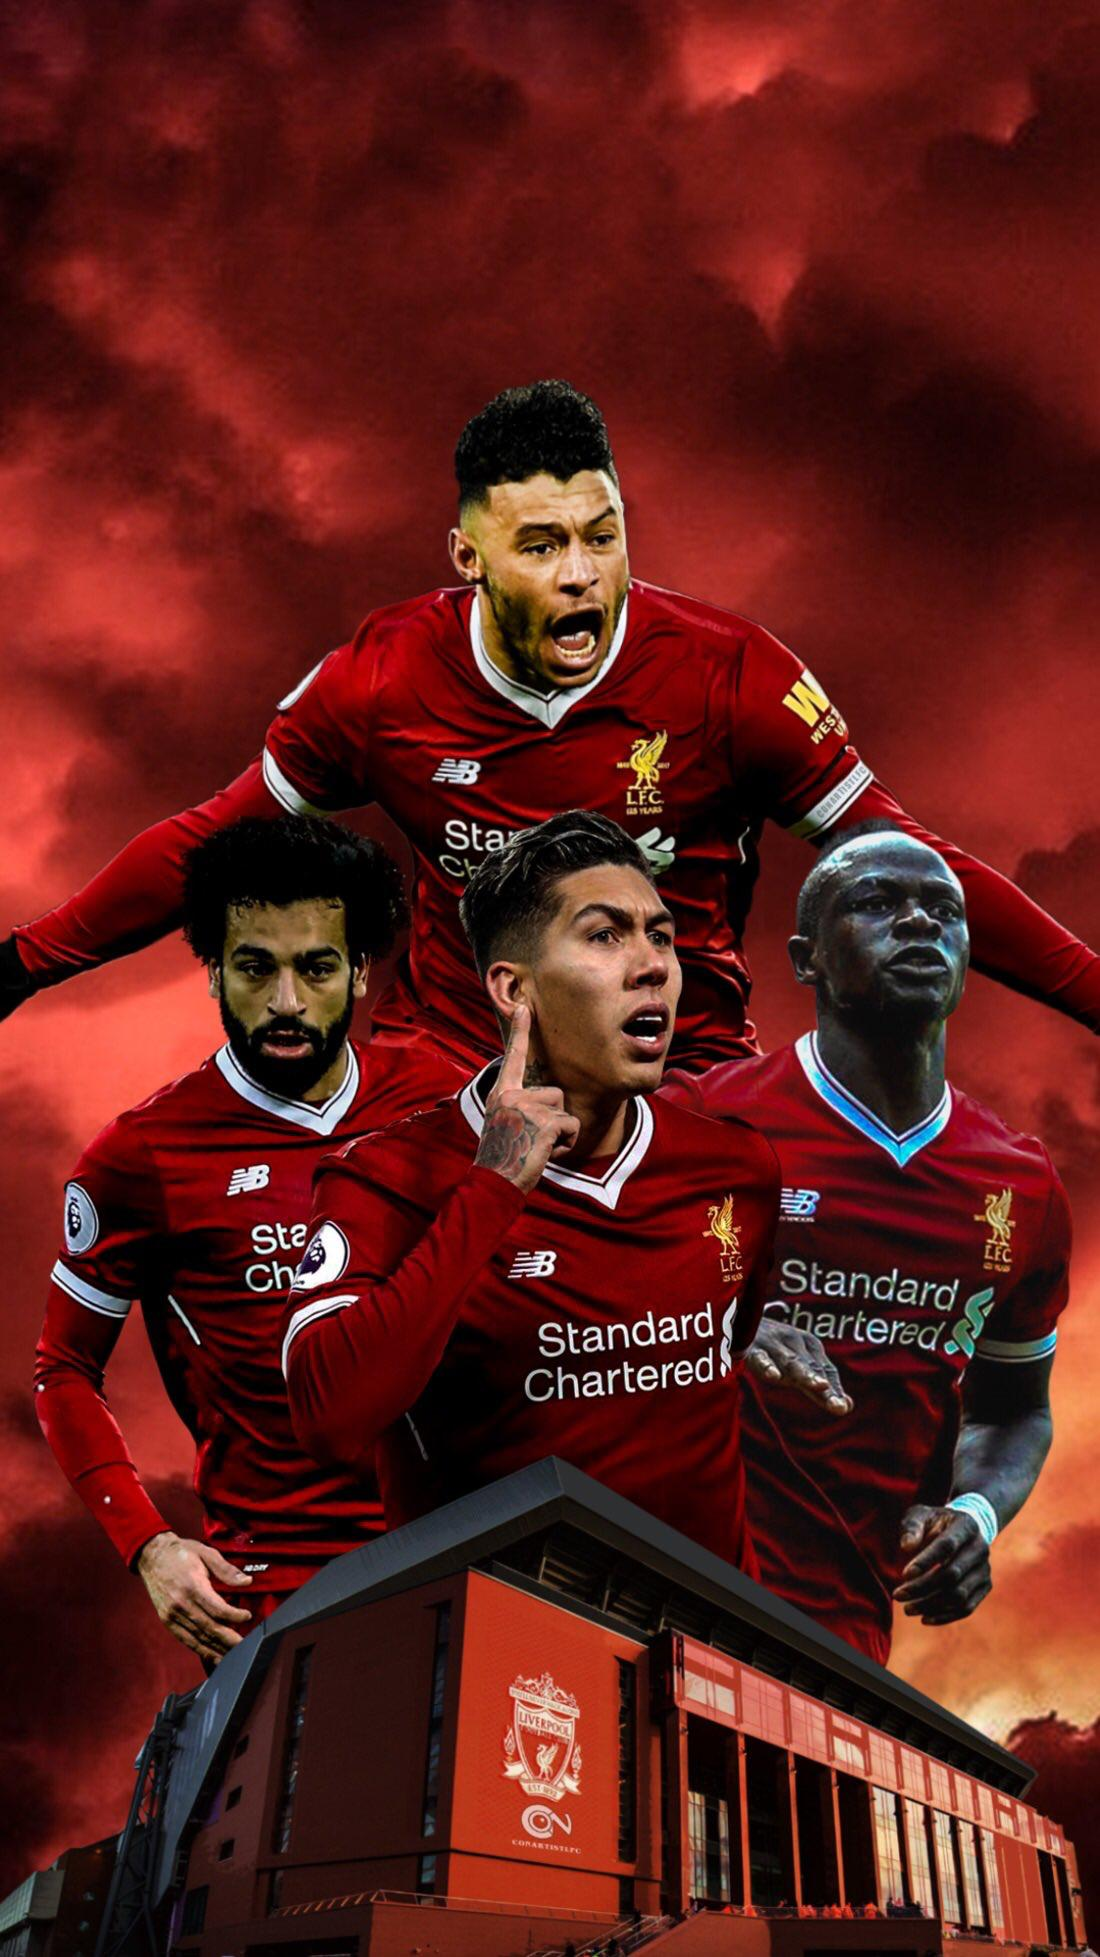 Liverpool Wallpaper 2018 for Android - APK Download